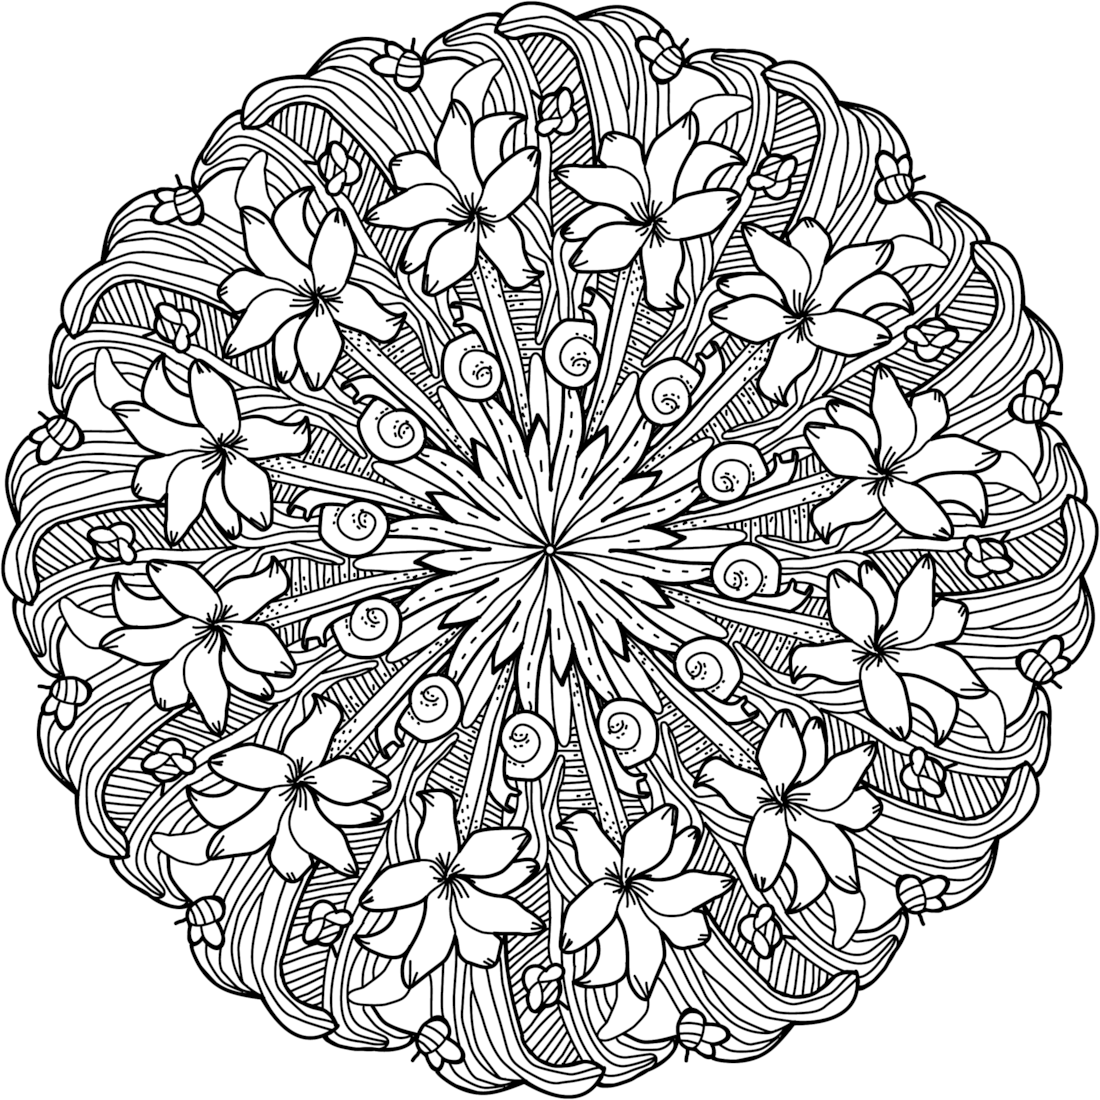 Pin de Debra Dill en Coloring Pages | Pinterest | Mandalas, Colorear ...